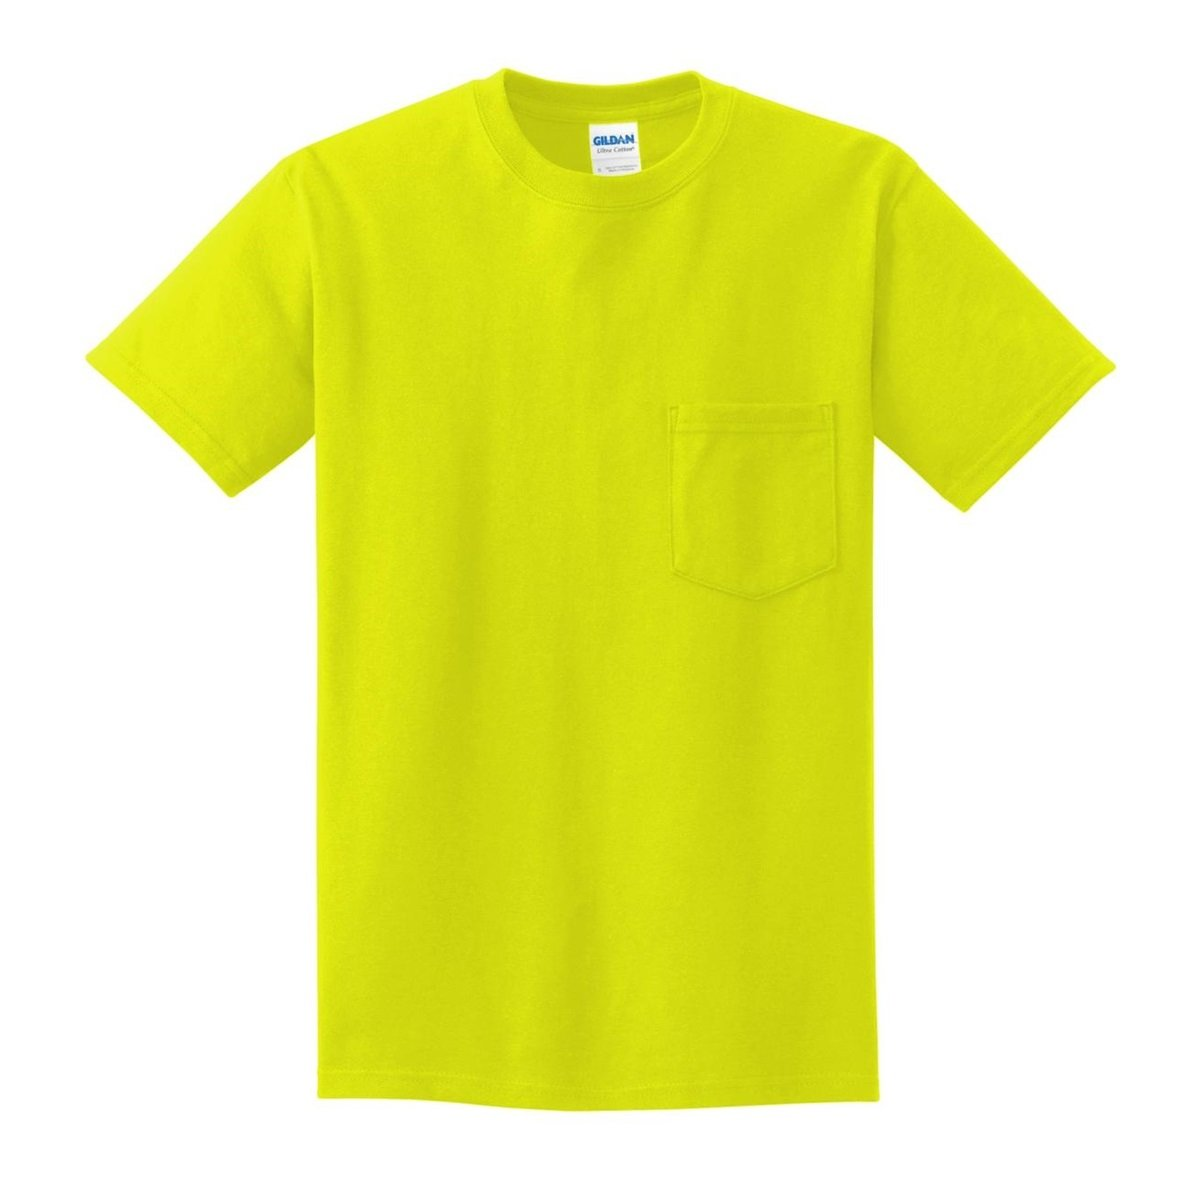 gildan 2300 ultra cotton t shirt with pocket safety